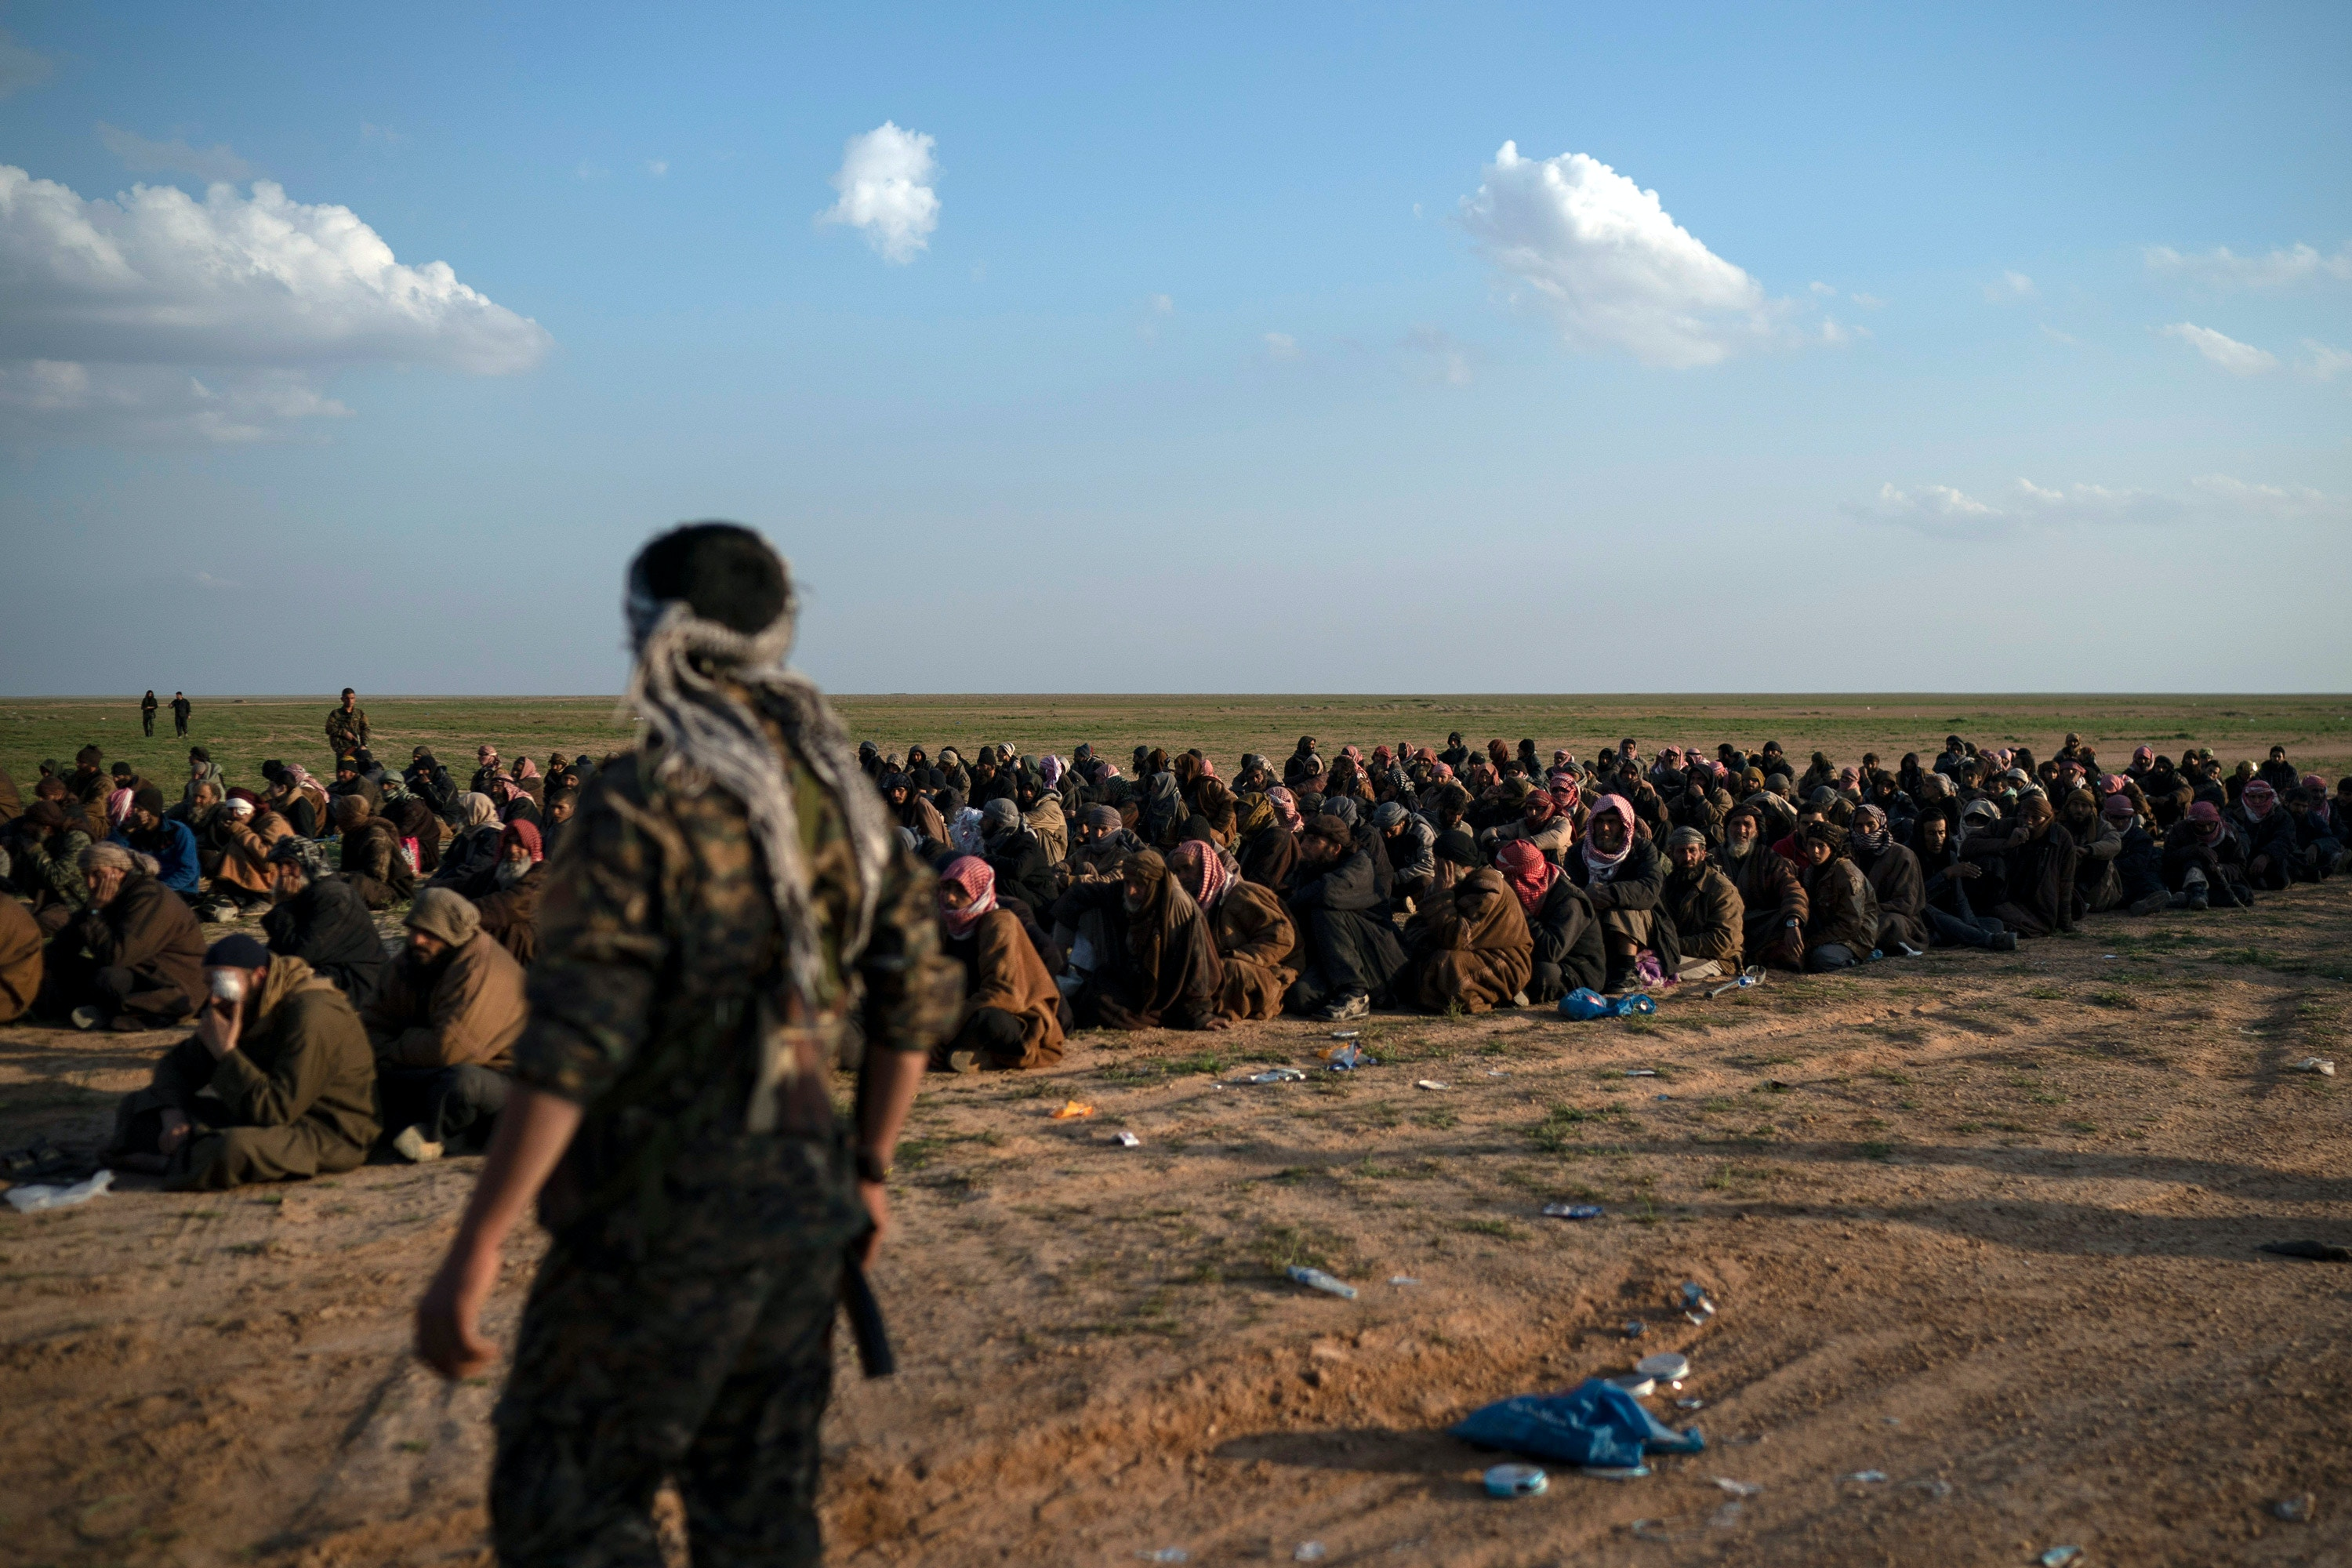 FILE - In this Feb. 22, 2019 file photo, U.S.-backed Syrian Democratic Forces (SDF) fighters stand guard next to men waiting to be screened after being evacuated out of the last territory held by Islamic State group militants, near Baghouz, eastern Syria. The IS could get a new injection of life if conflict erupts between the Kurds and Turkey in northeast Syria as the U.S. pulls its troops back from the area. The White House has said Turkey will take over responsibility for the thousands of IS fighters captured during the long campaign that defeated the militants in Syria. But it's not clear how that could happen. (AP Photo/Felipe Dana, File)